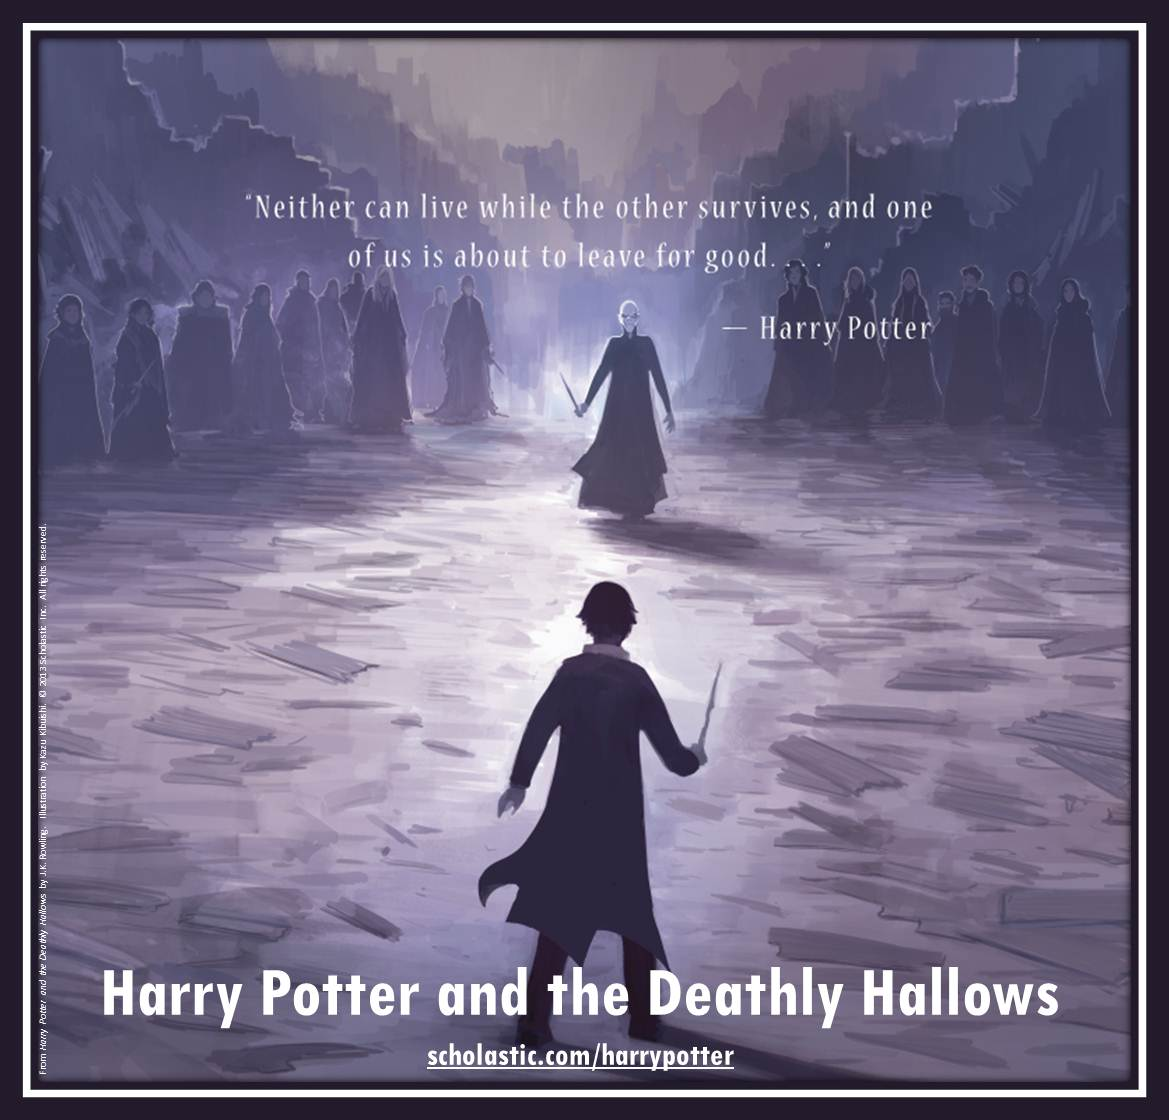 Harry Potter and the Deathly Hallows back cover created by Kazu Kibuishi